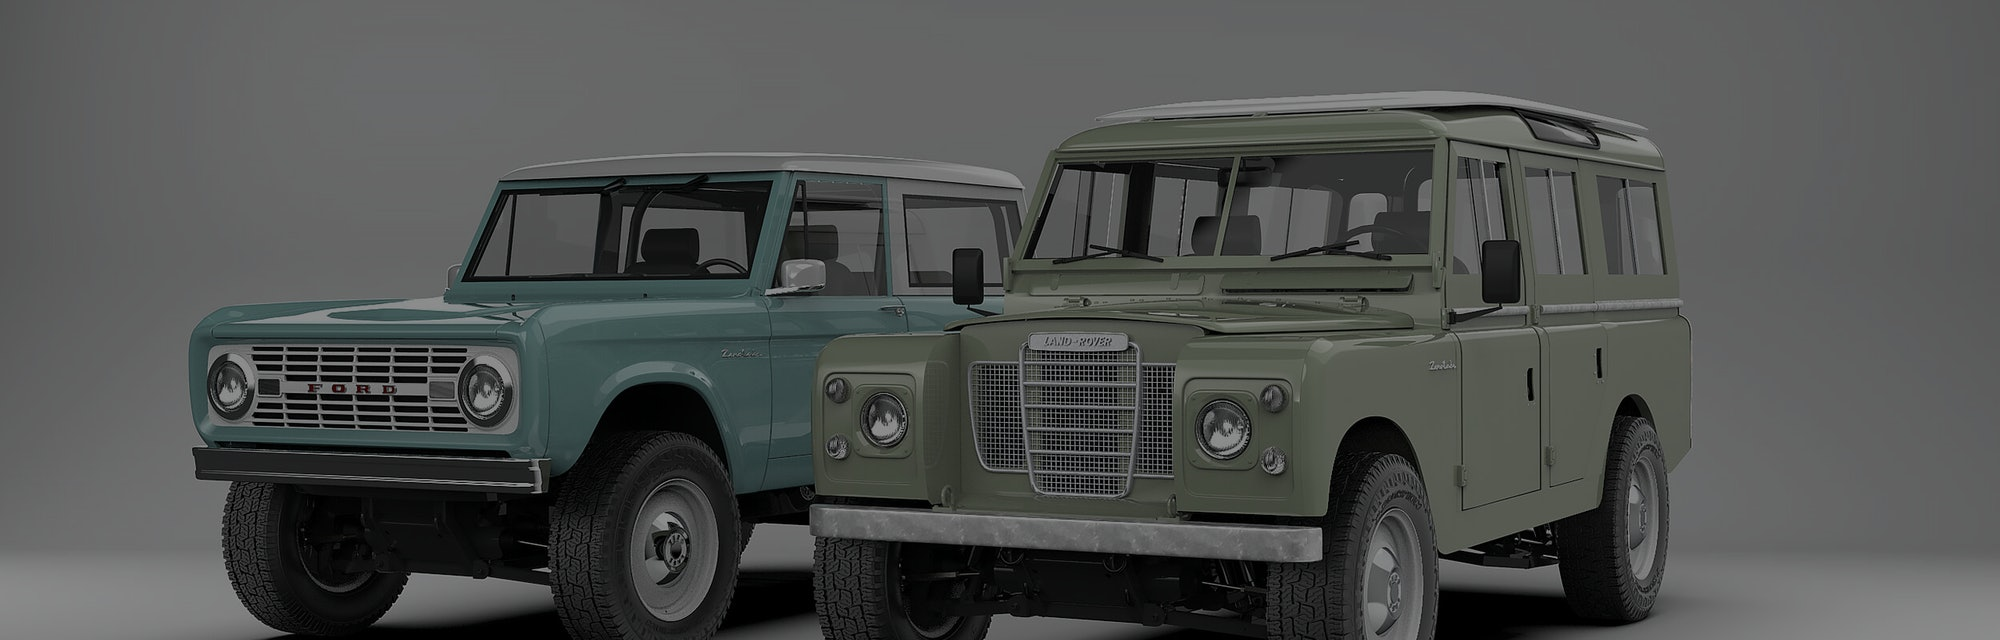 Zero Labs' electrified Land Rover and Bronco in a studio